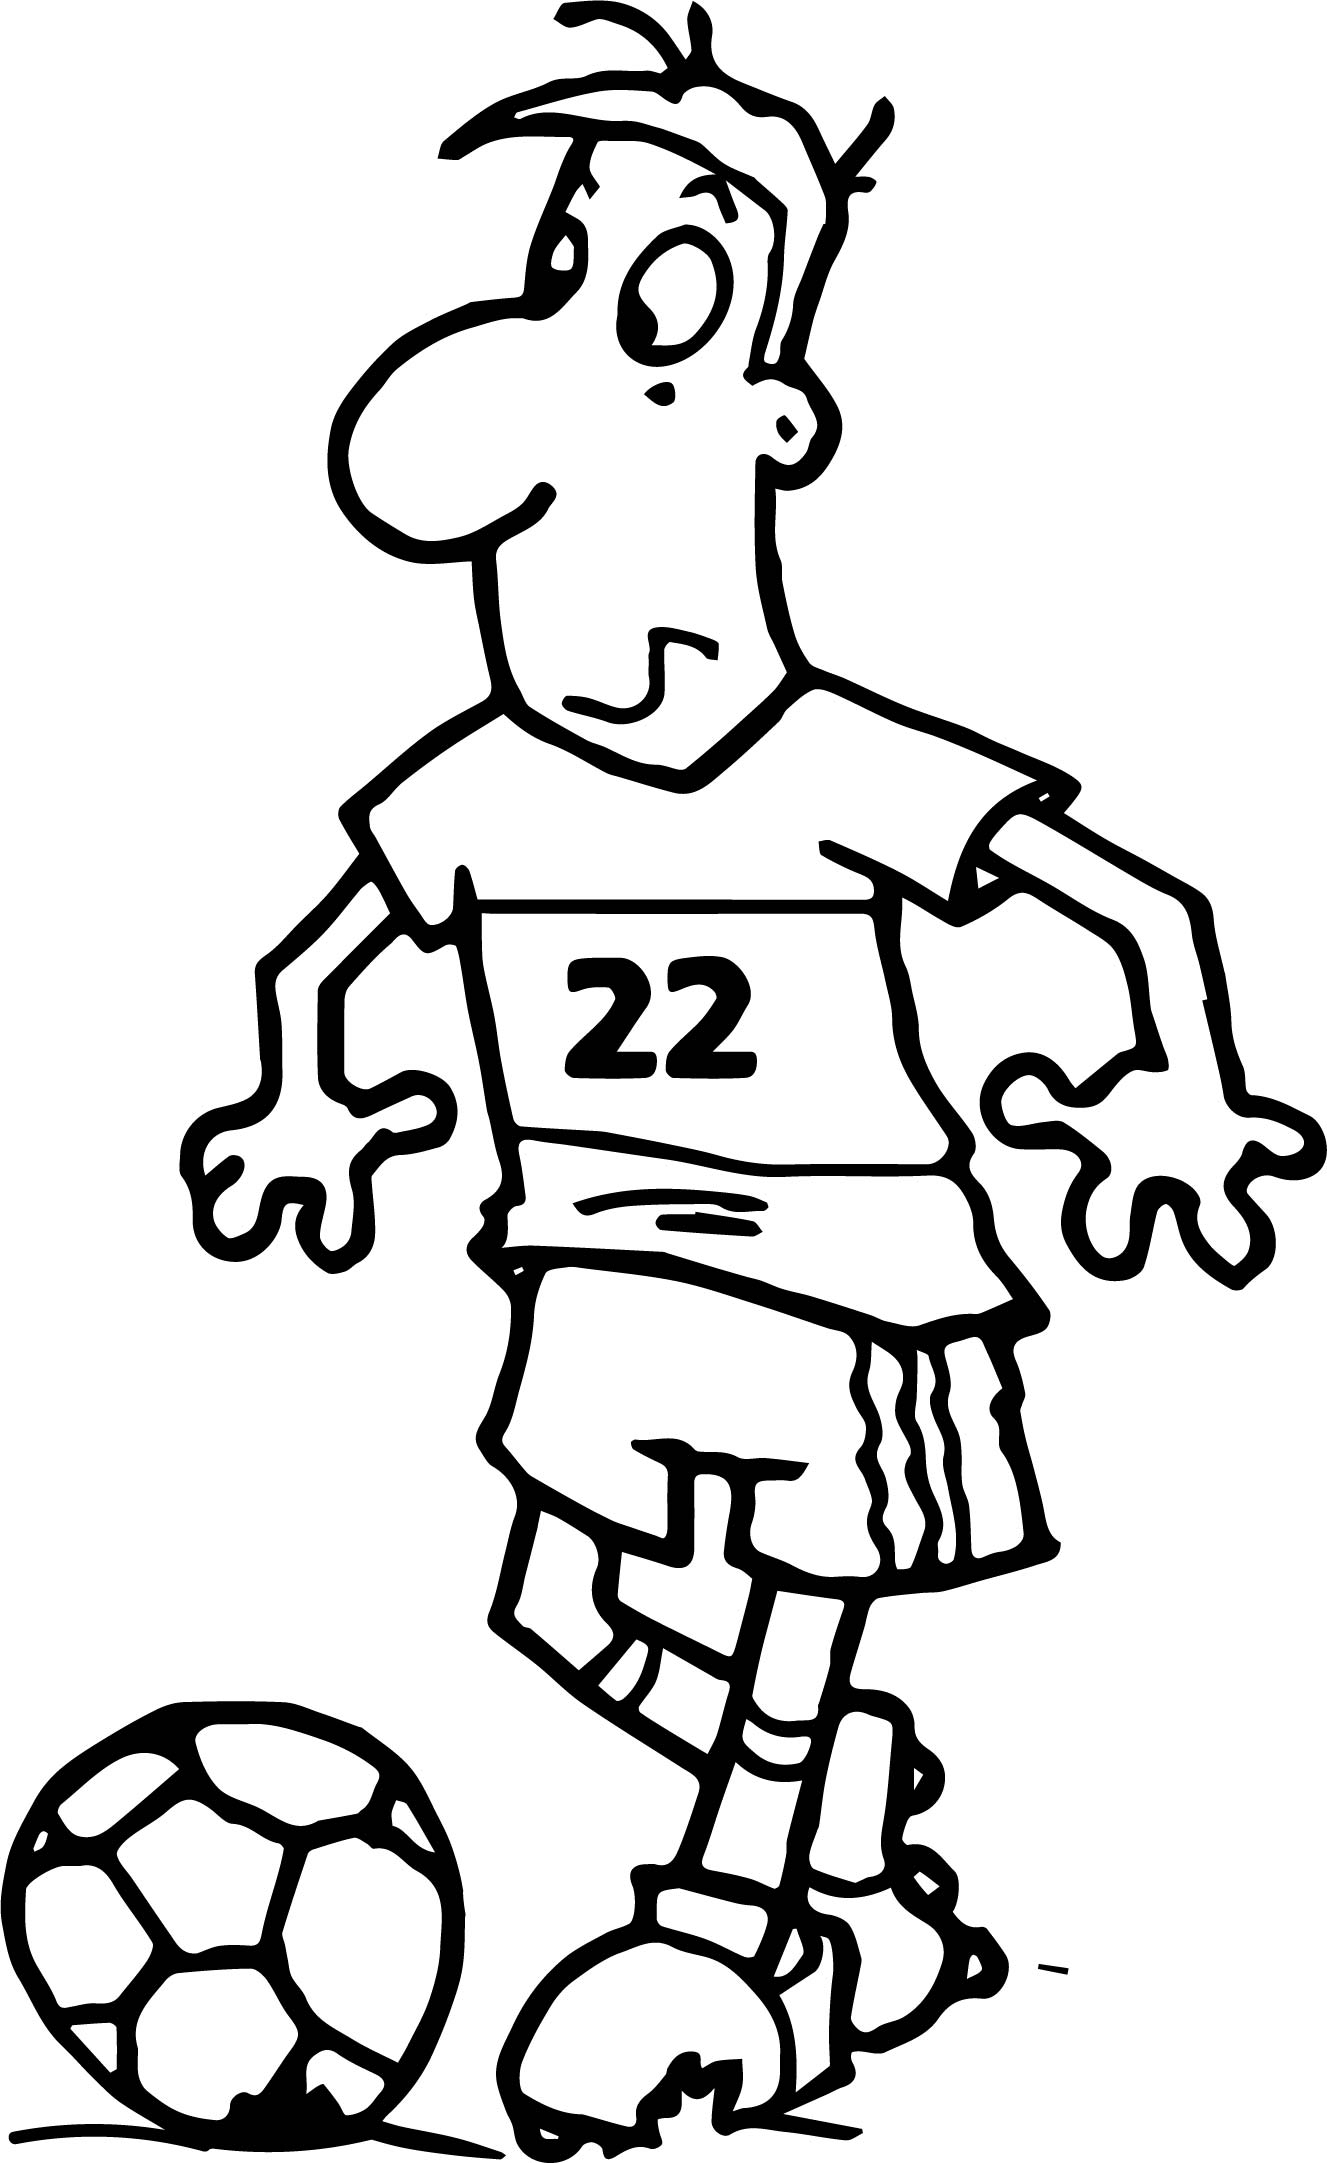 soccer player coloring pages - soccer player cartoon free playing football coloring page